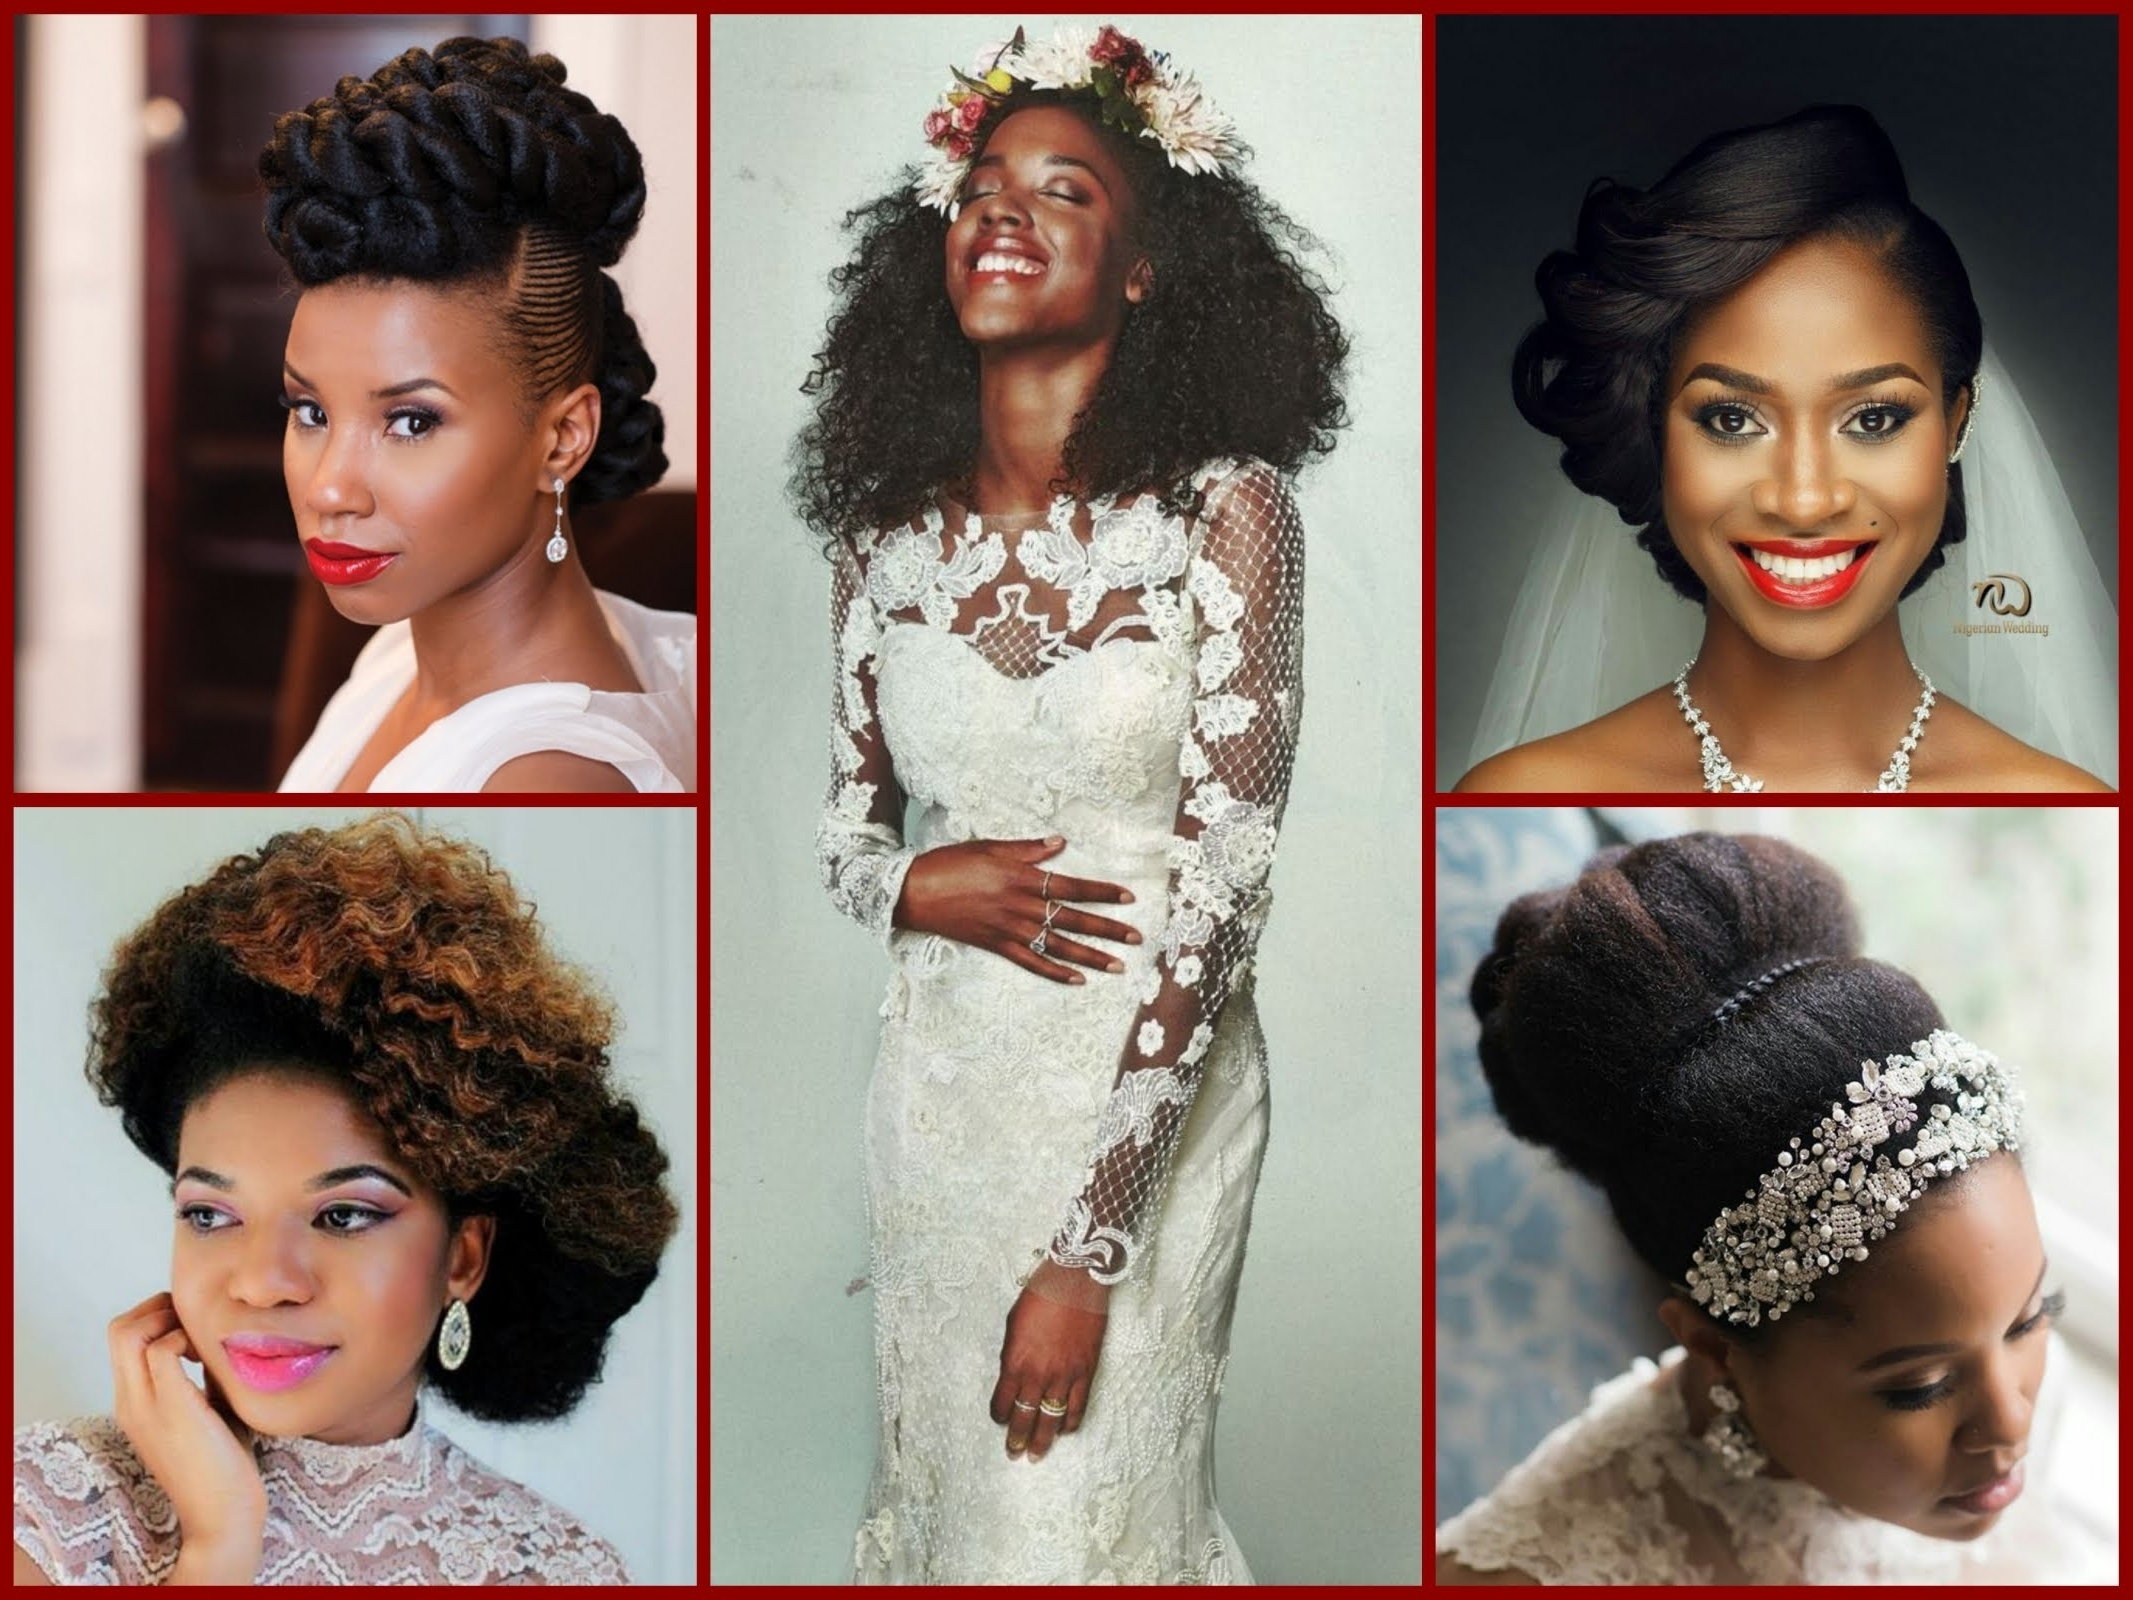 Latest Wedding Hairstyles For Short Dark Hair Within Black Women Wedding Hairstyles – 40 Beautiful Updos – Youtube (View 6 of 15)